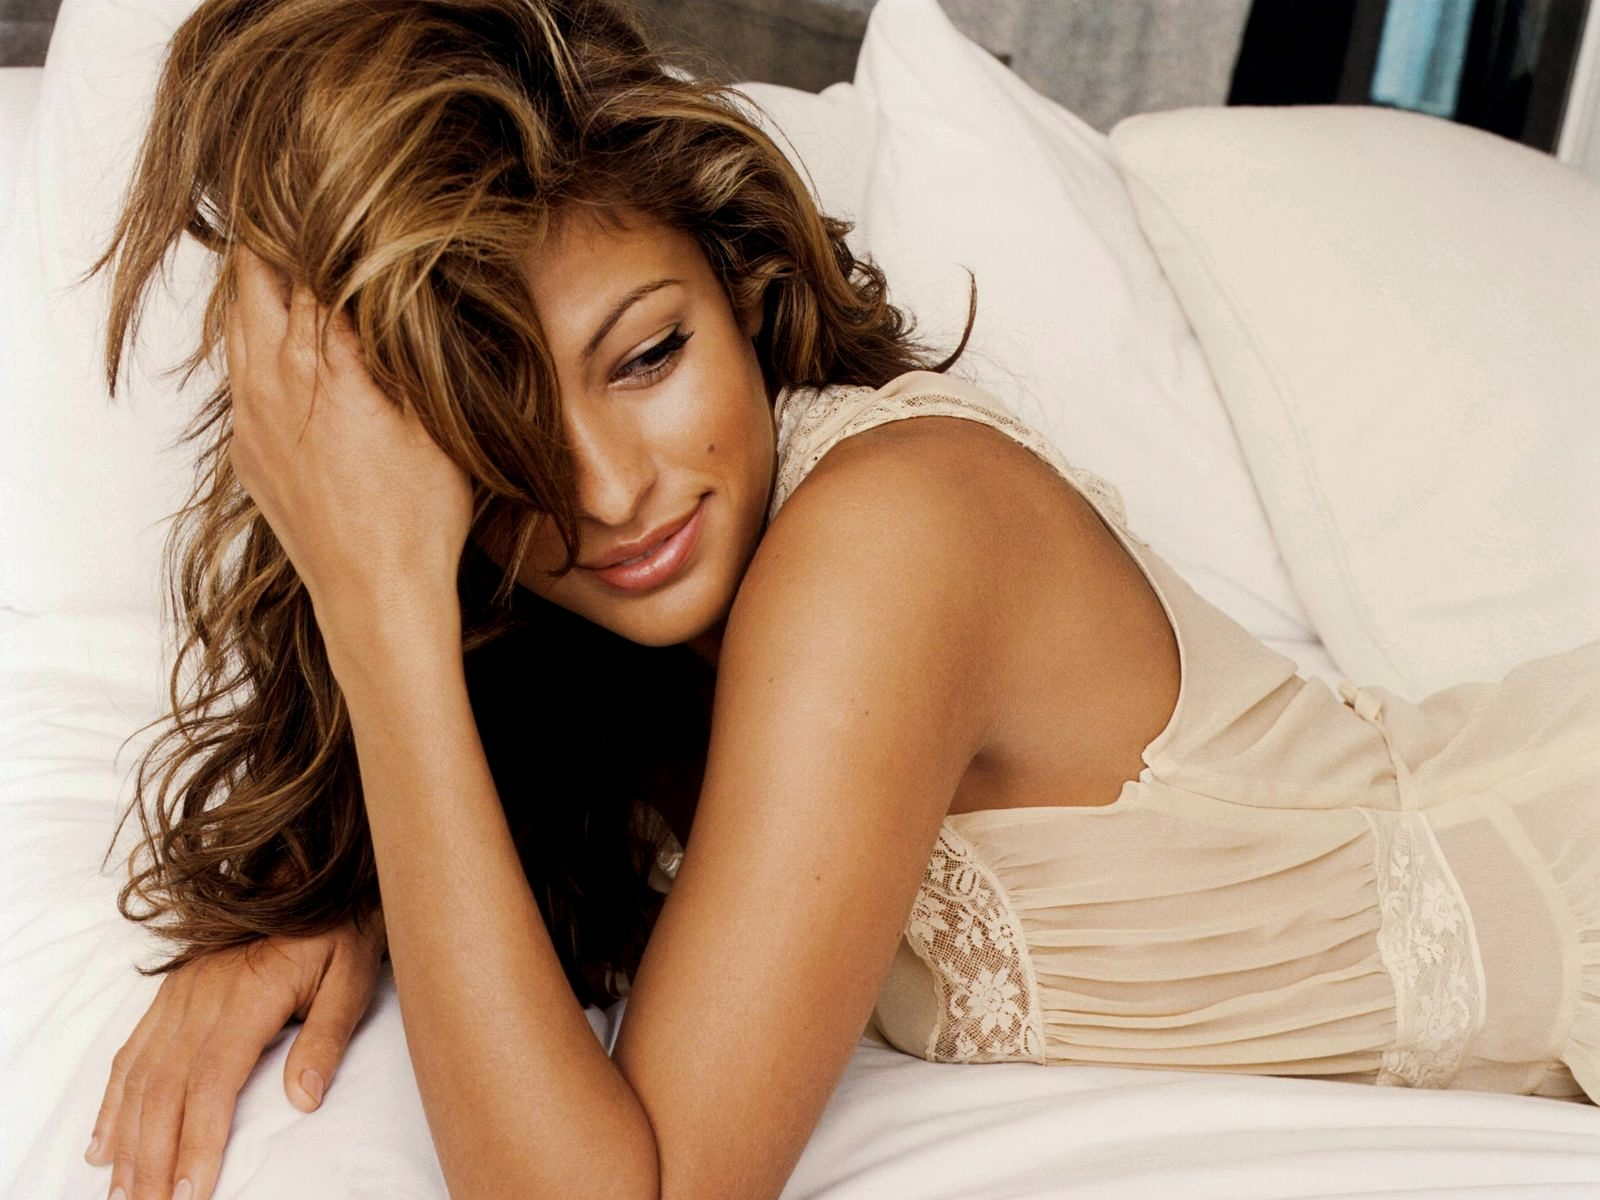 hd wallpapers super hot actress eva mendes hd 2012 wallpapers 1600x1200. Black Bedroom Furniture Sets. Home Design Ideas